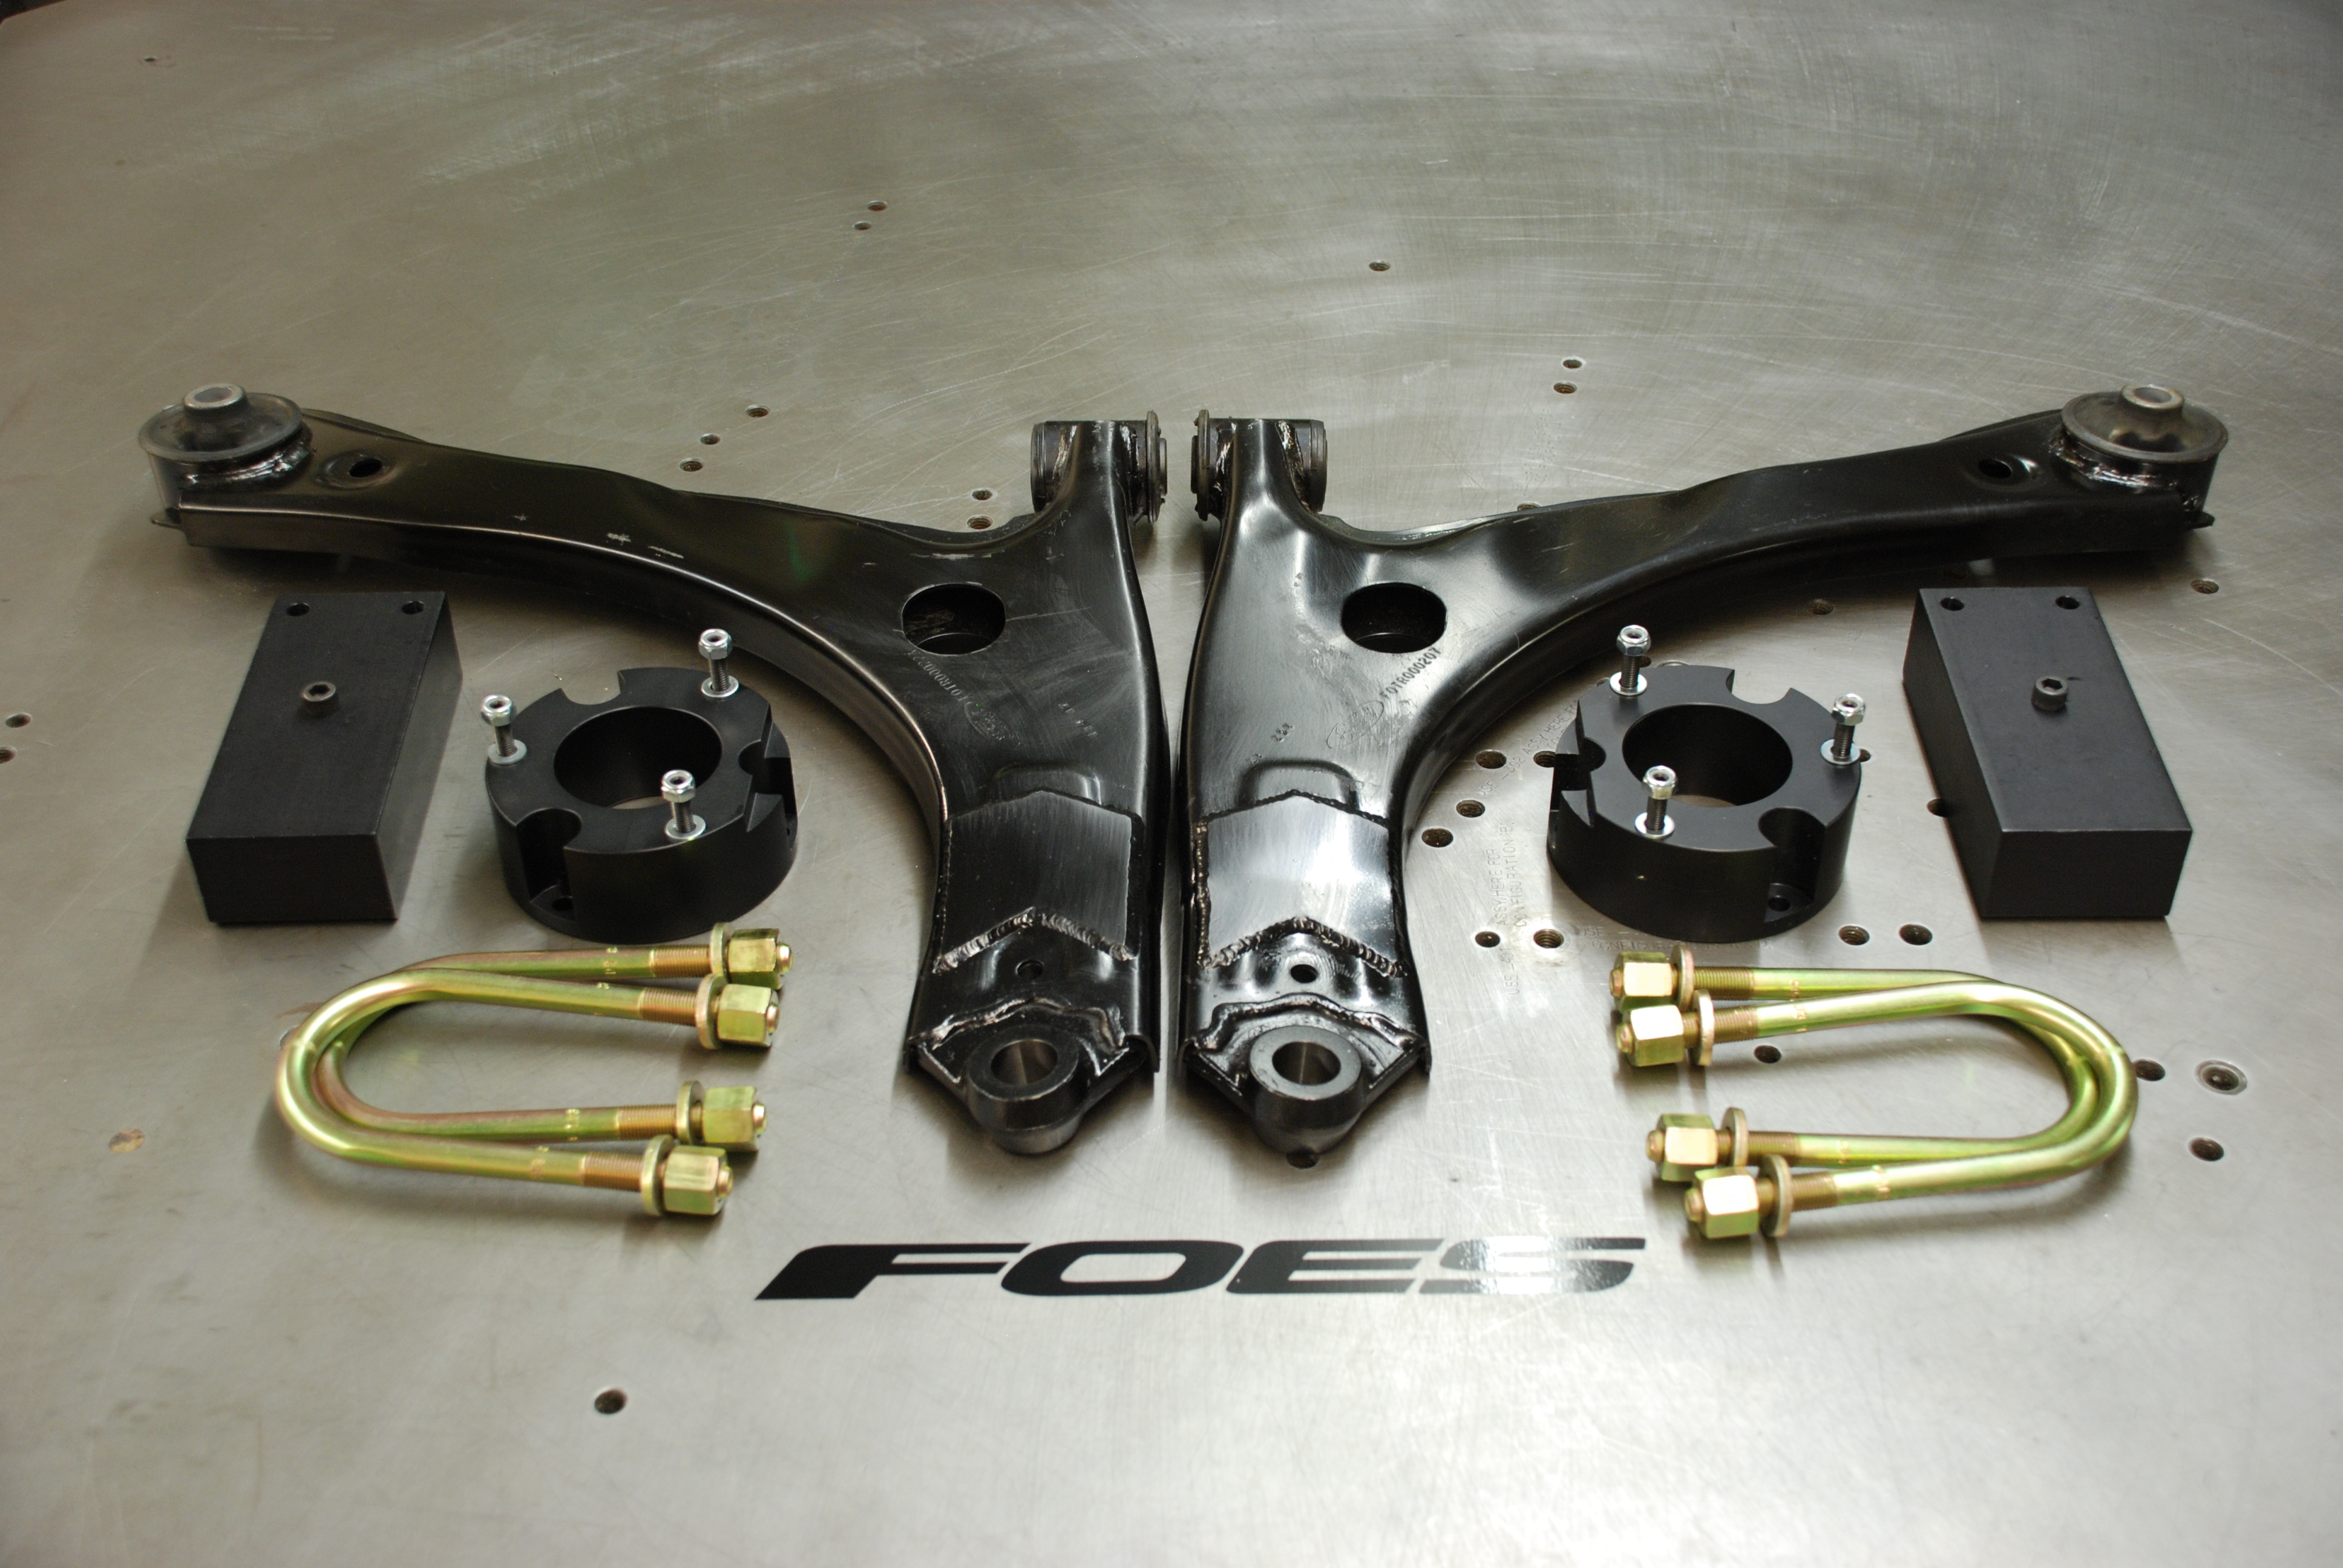 """Foes Racing lifts the Van Life with 2"""" lift kit & accessories for Ford Transit"""